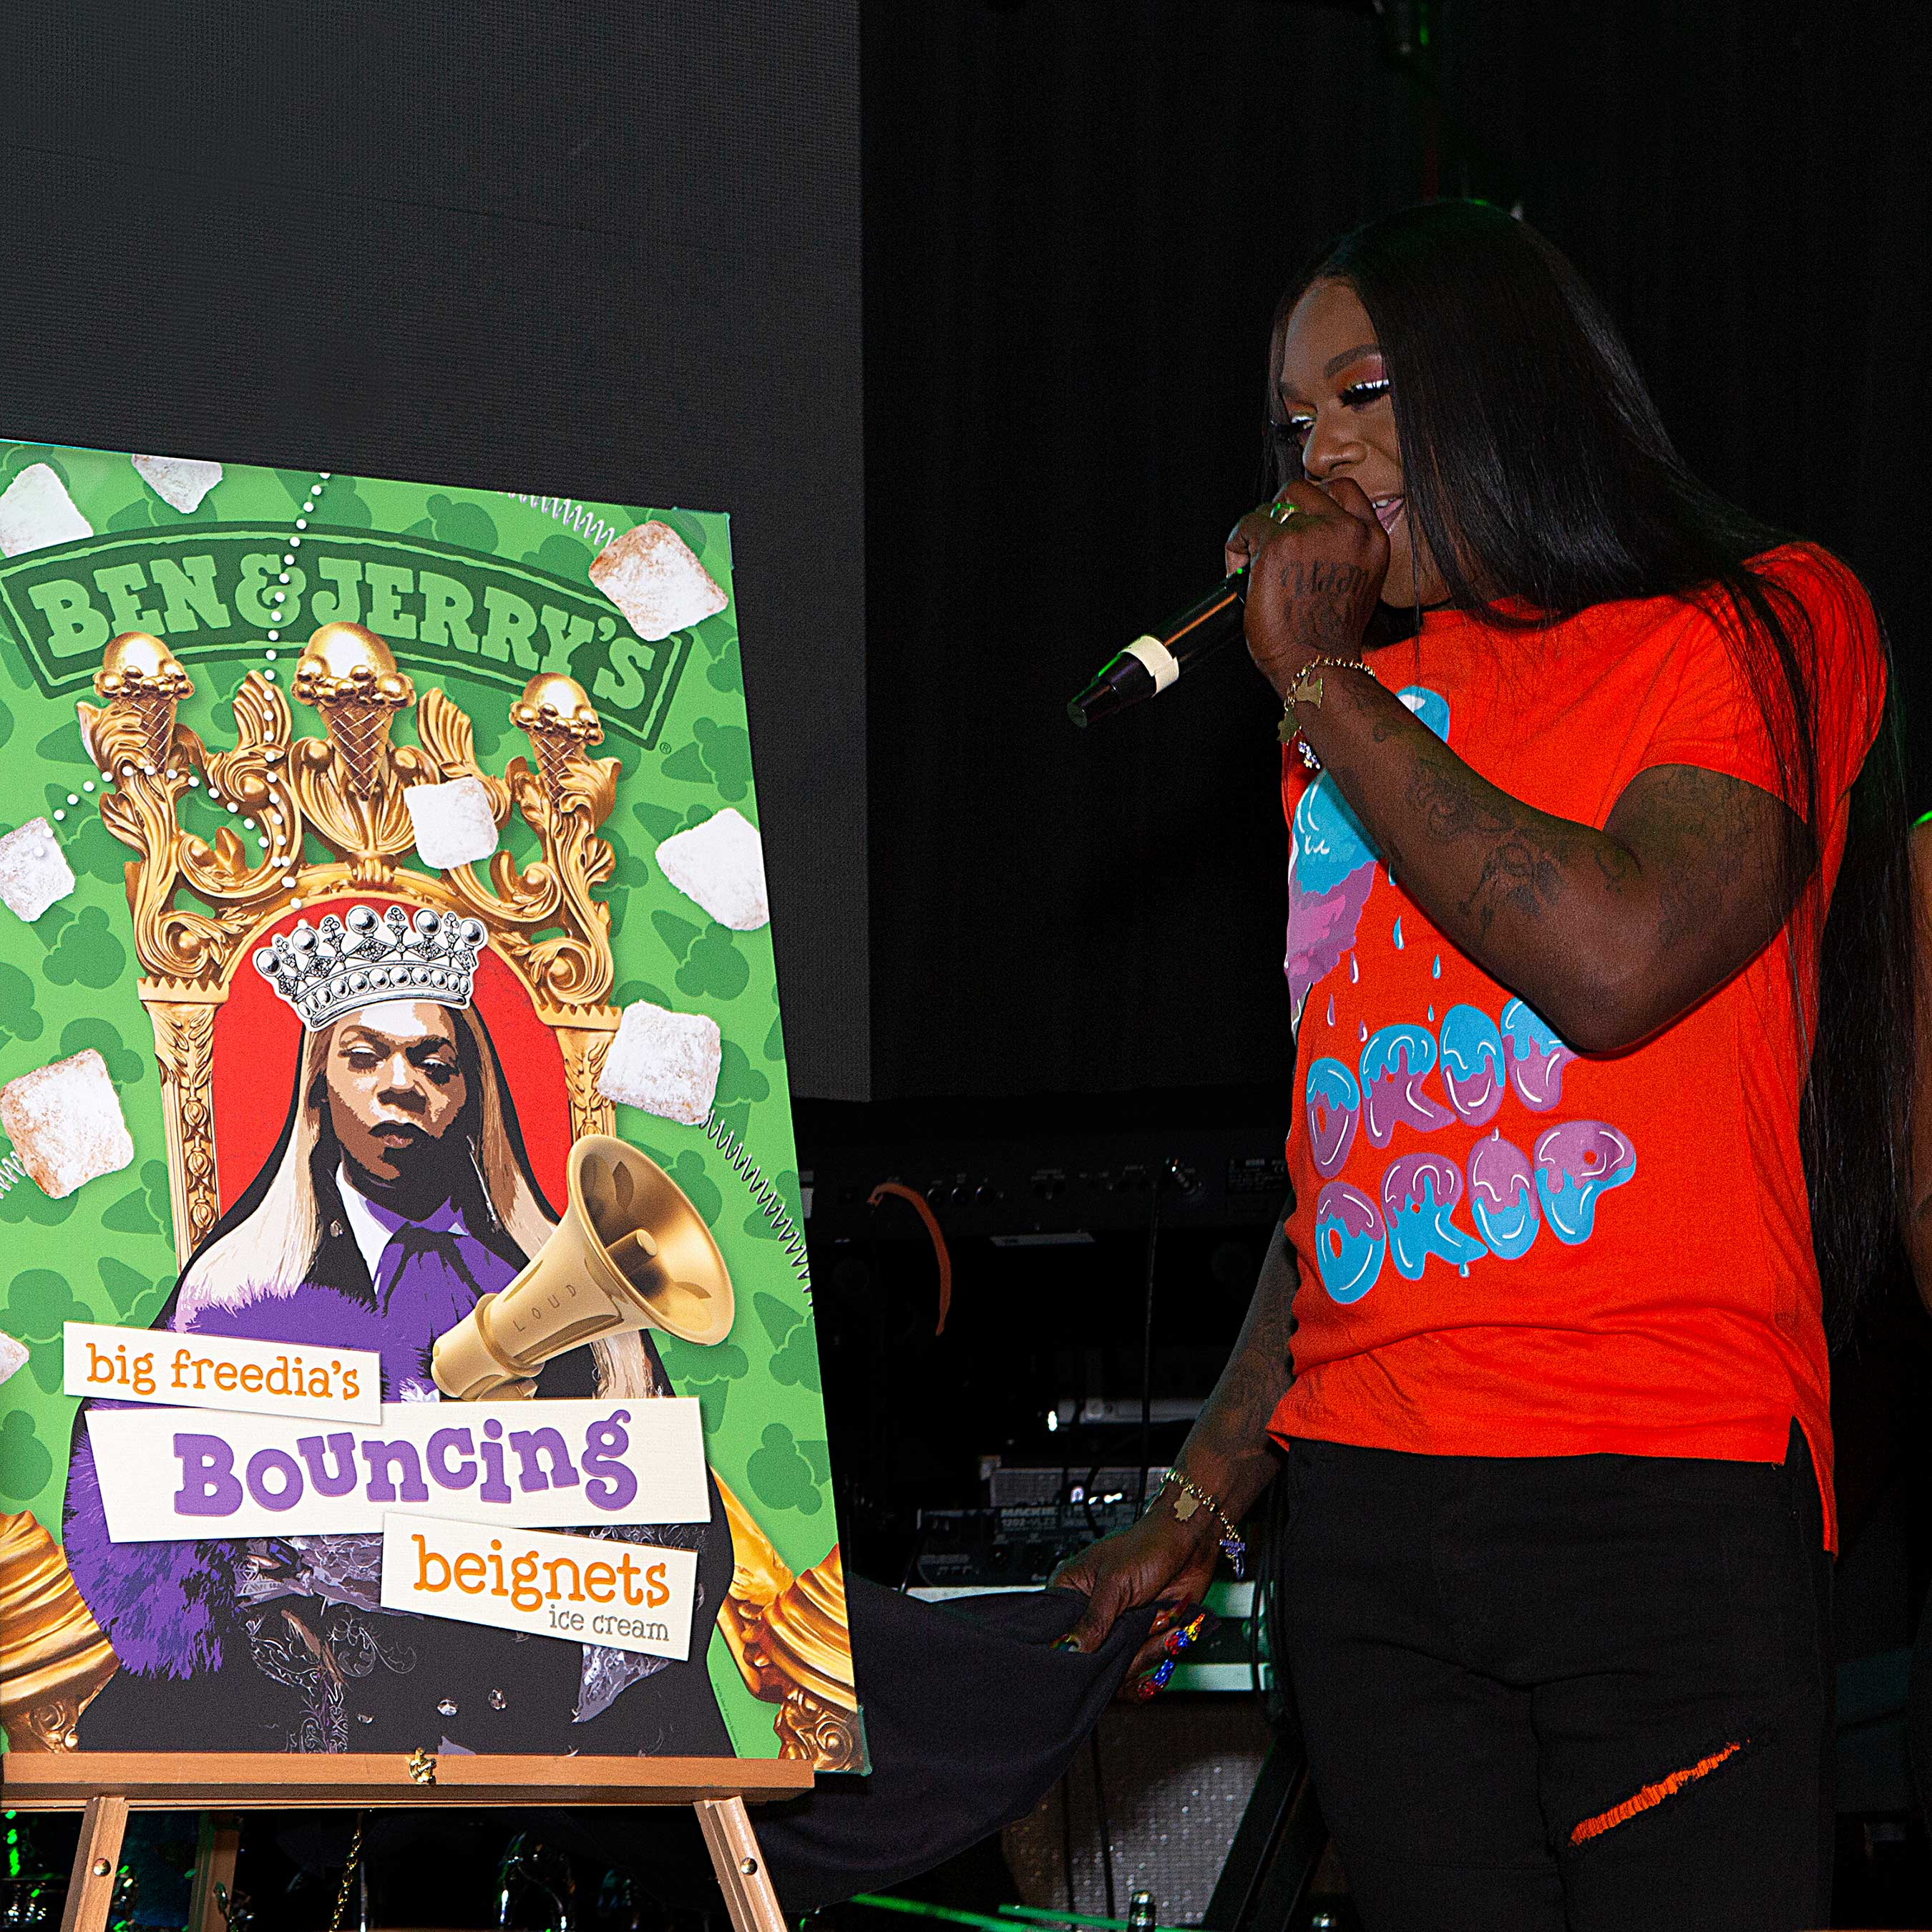 You already know! Today we teamed up with Big Freedia to dish out Bouncing Beignets for a limited time in #NOLA